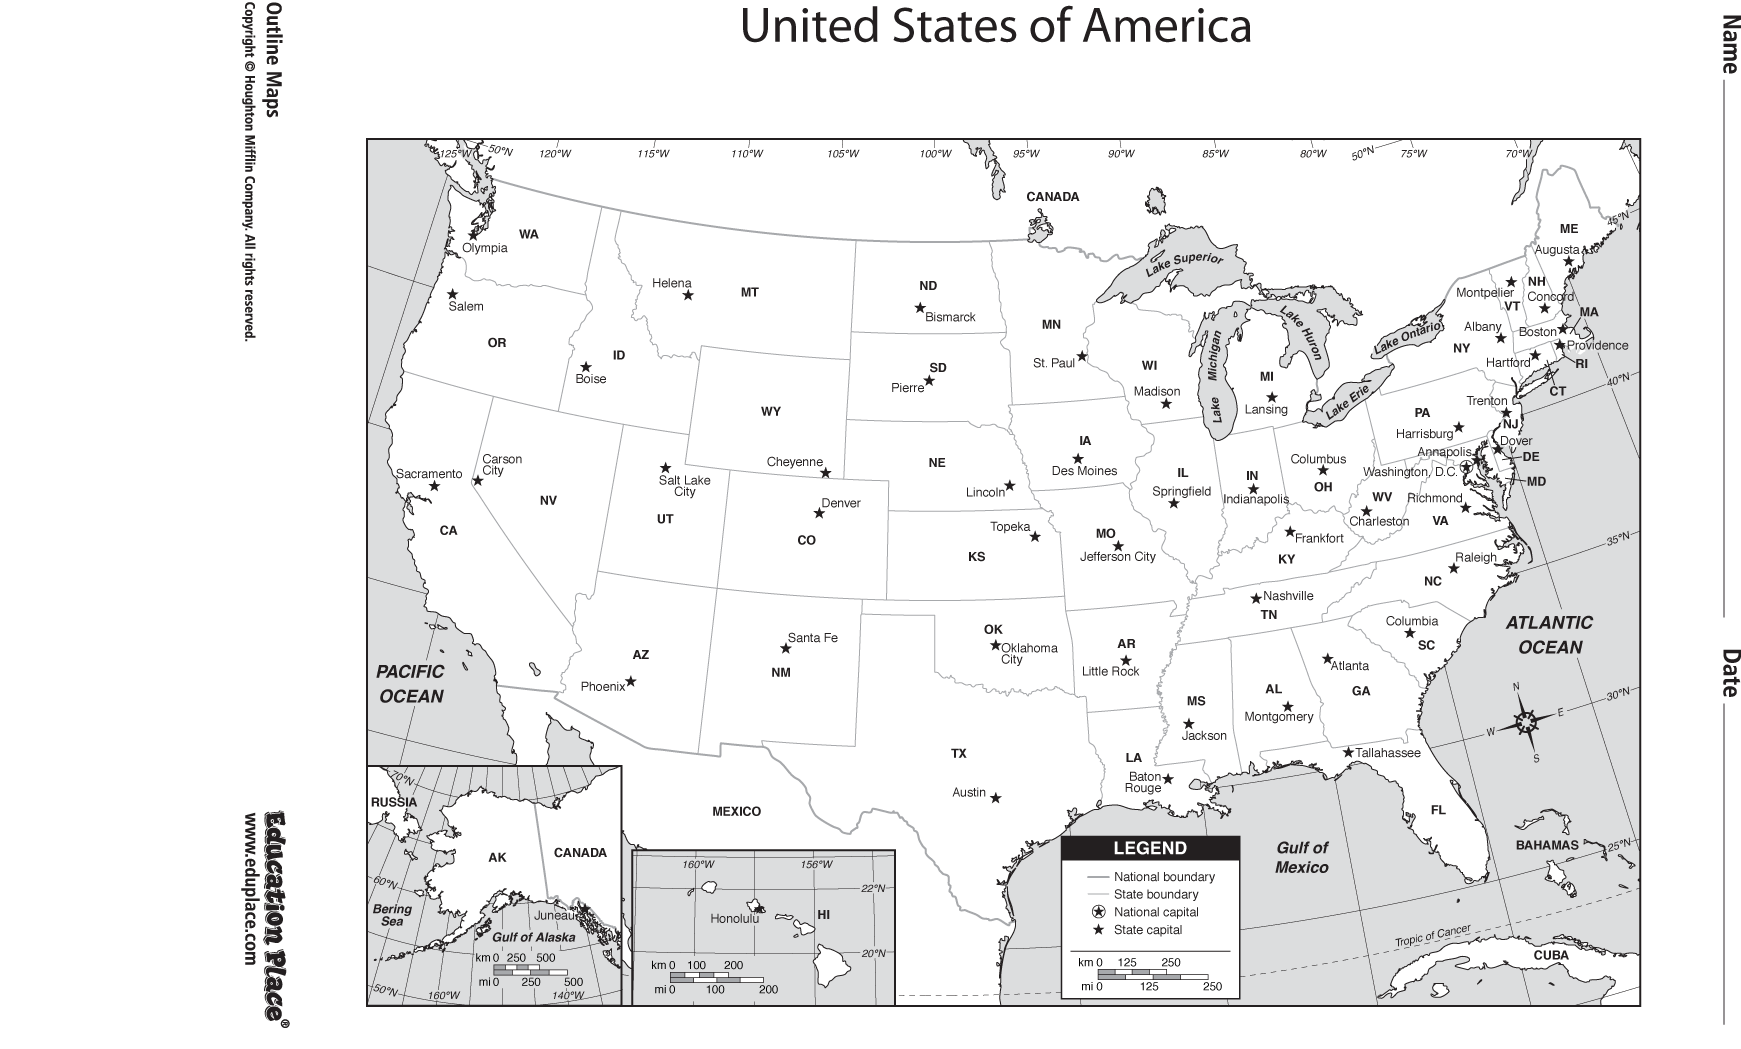 Blank Us Map For Capitals Tragomme Map United States With - Map of the us with longitude and latitude